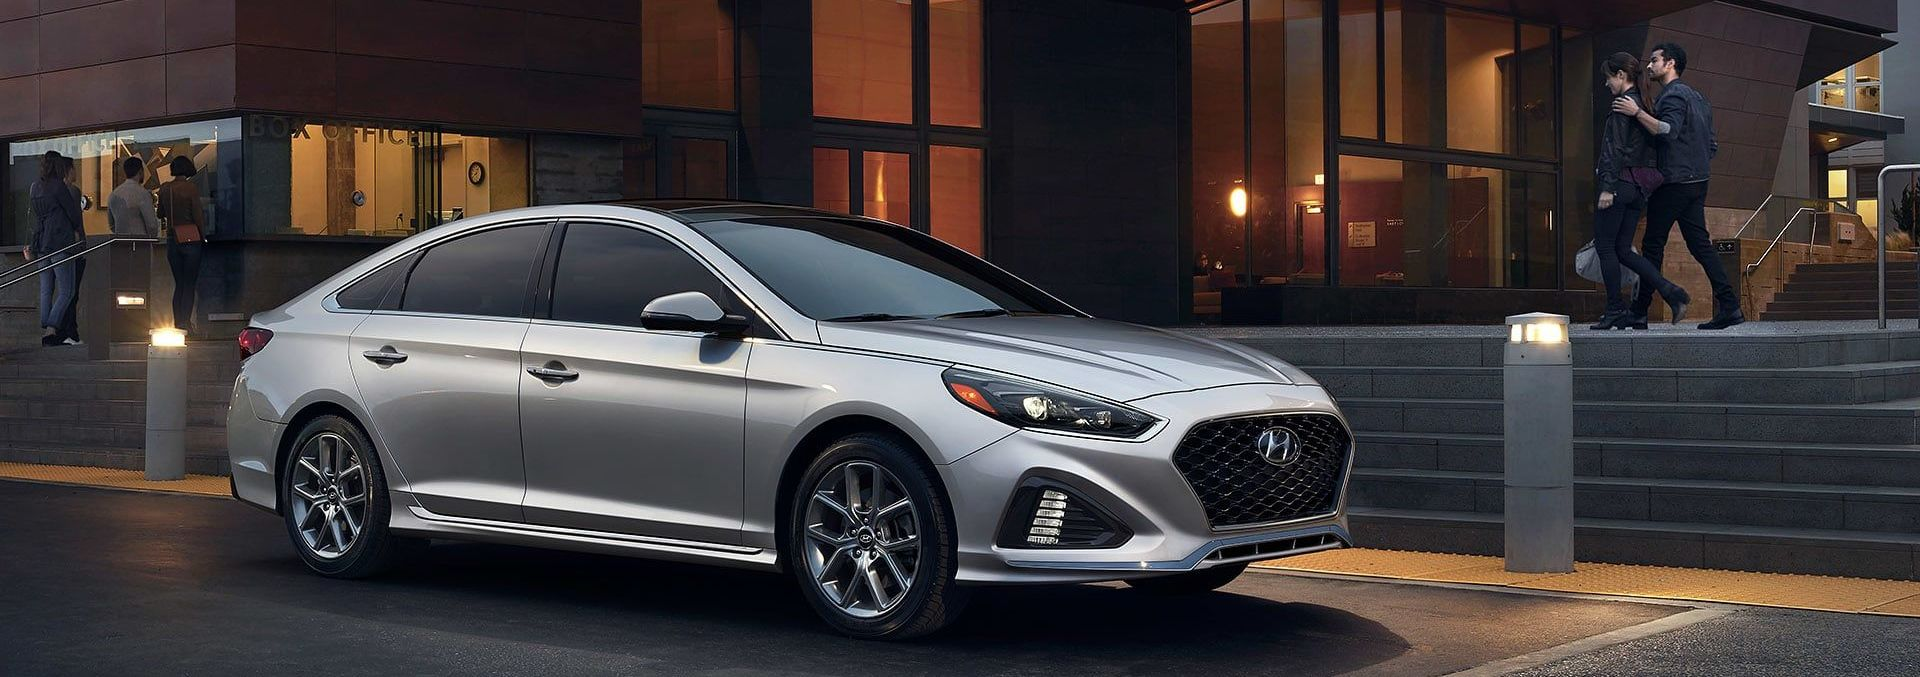 What Comes With a Certified Pre-Owned Hyundai?